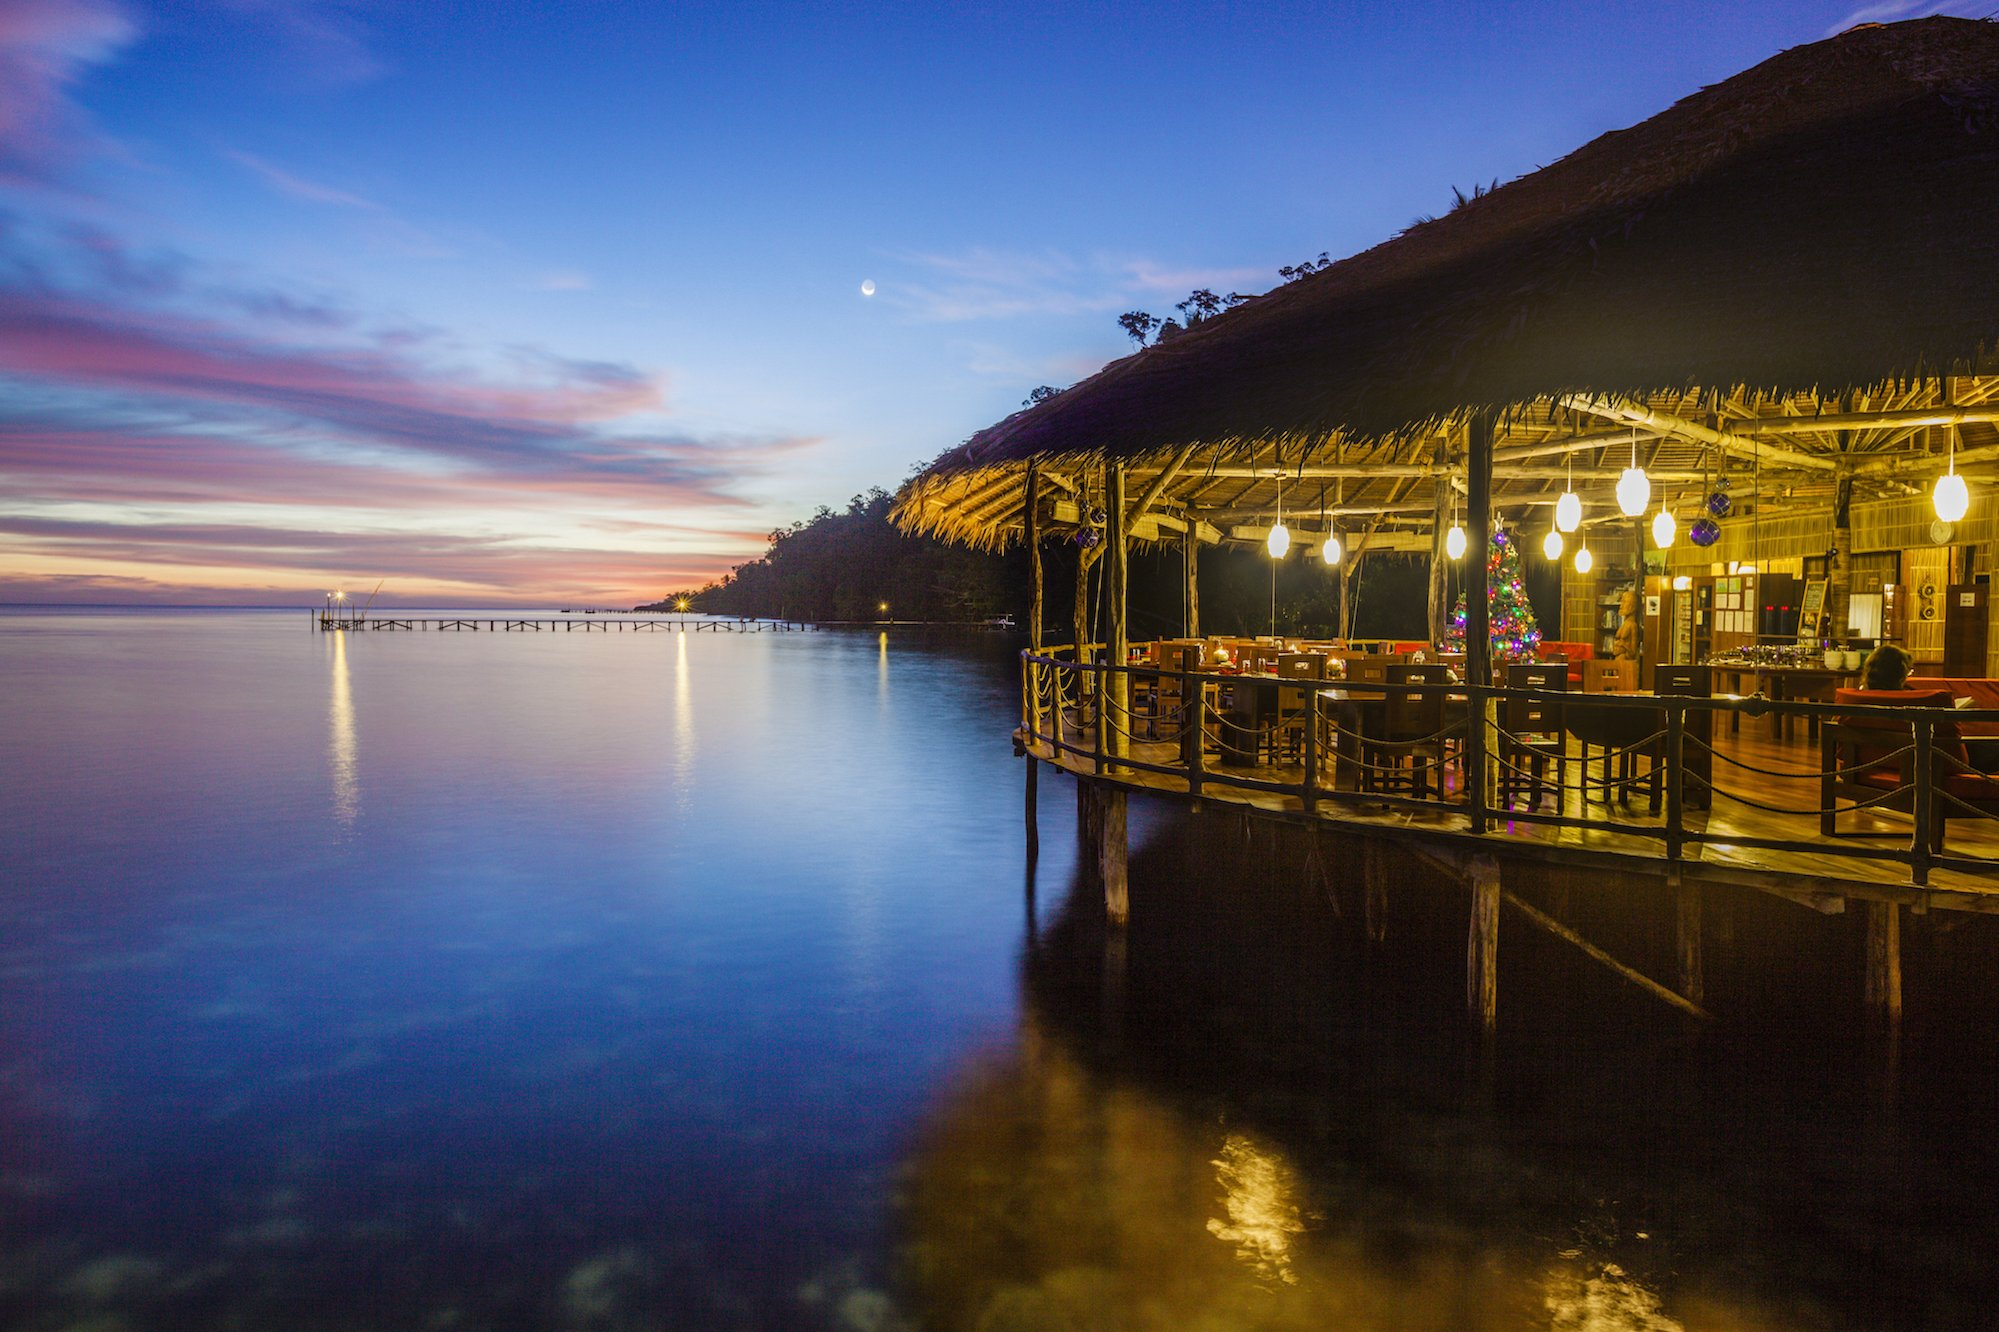 (English) ambiance of our restaurant in Raja Ampat with a colorful evening sky